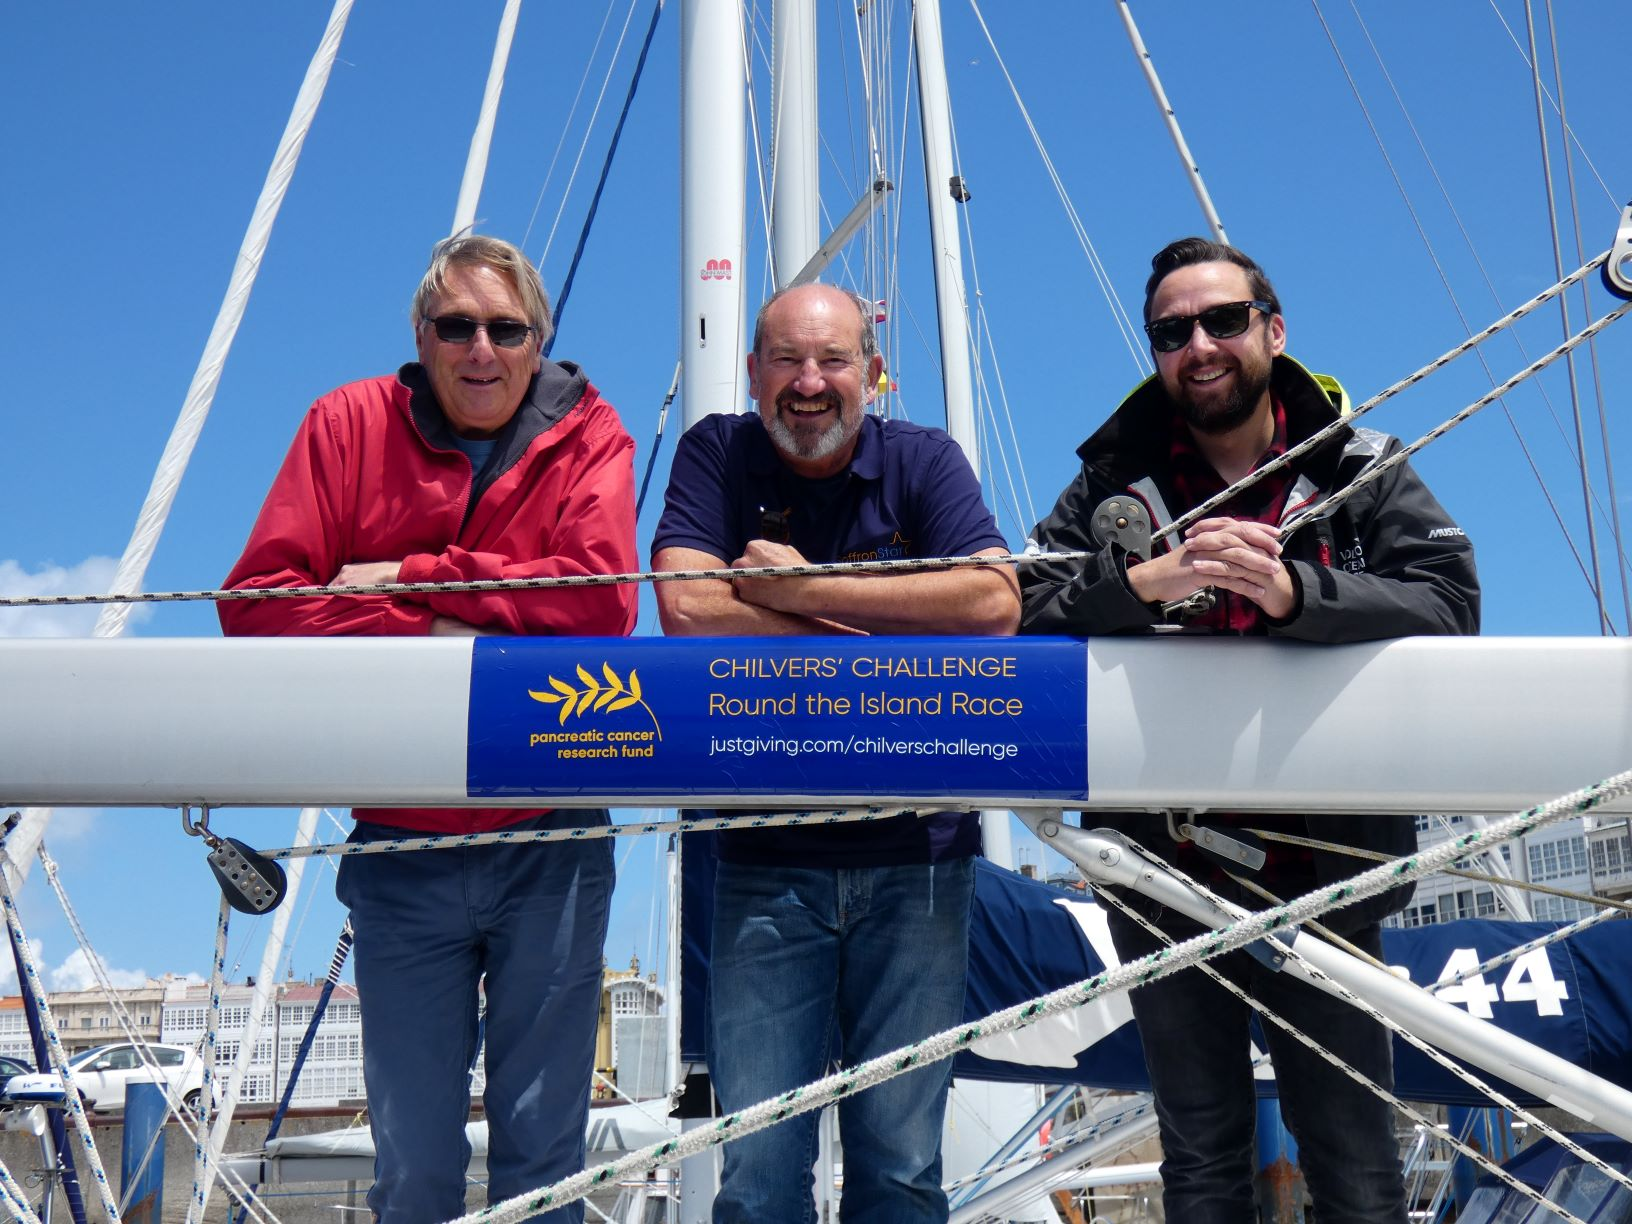 David Harper, John Digby and Paul Stewart on board the Saffron Star.